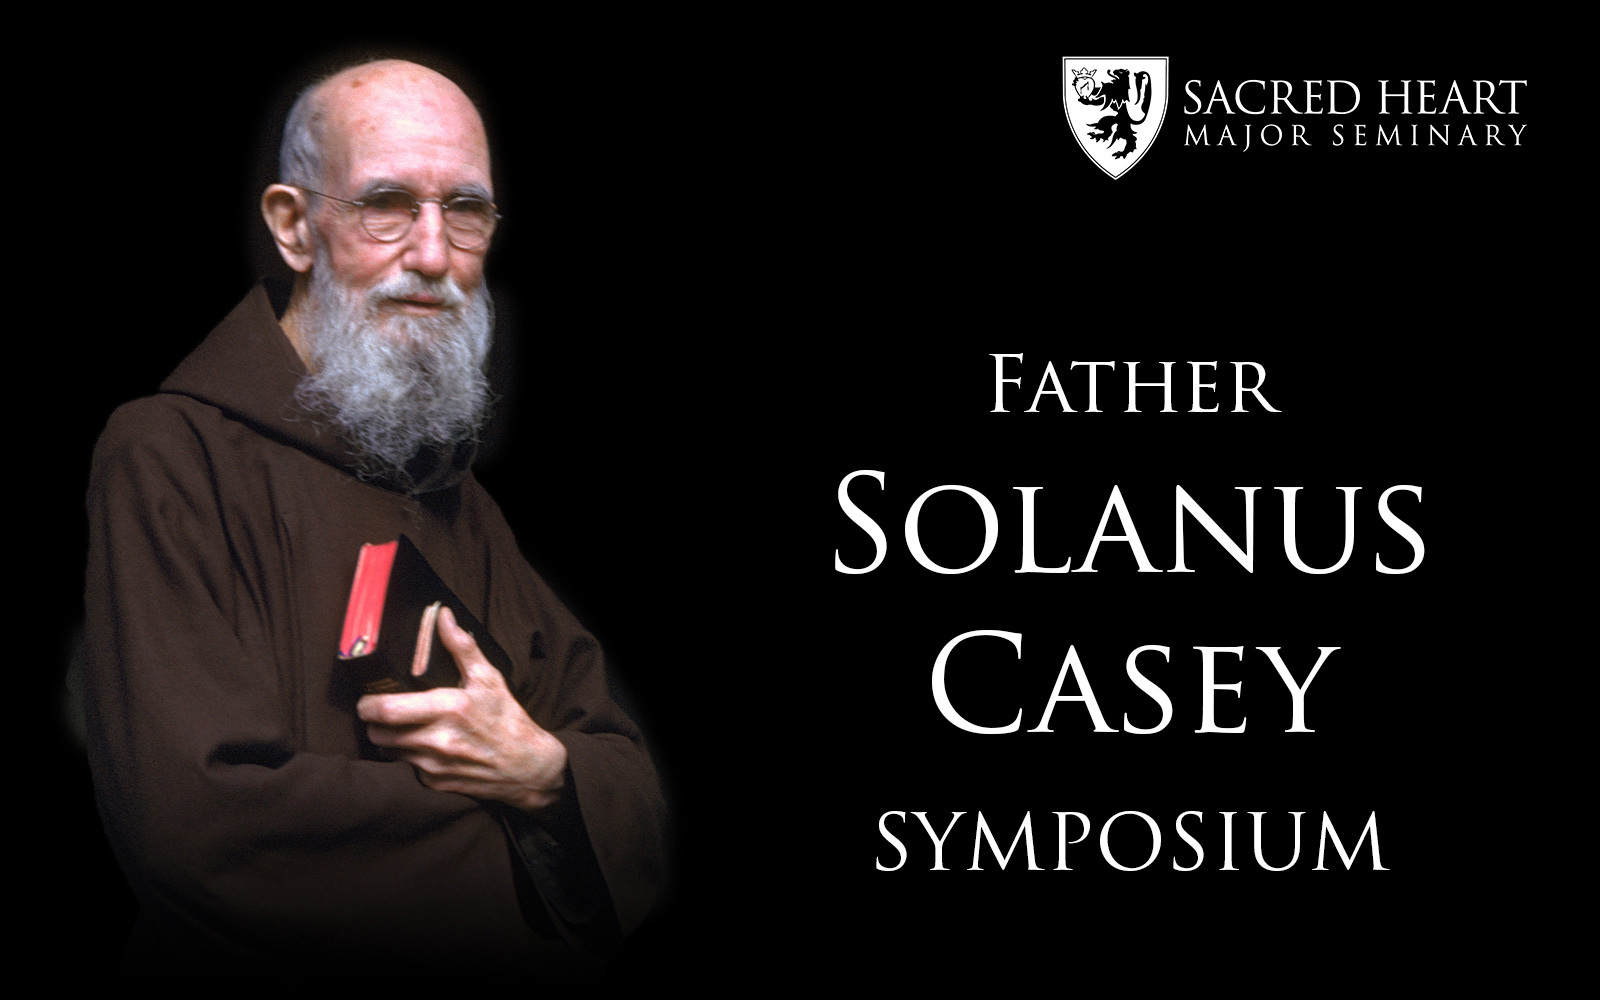 Father_Solanus_Casey_Symposium_01.jpg#as